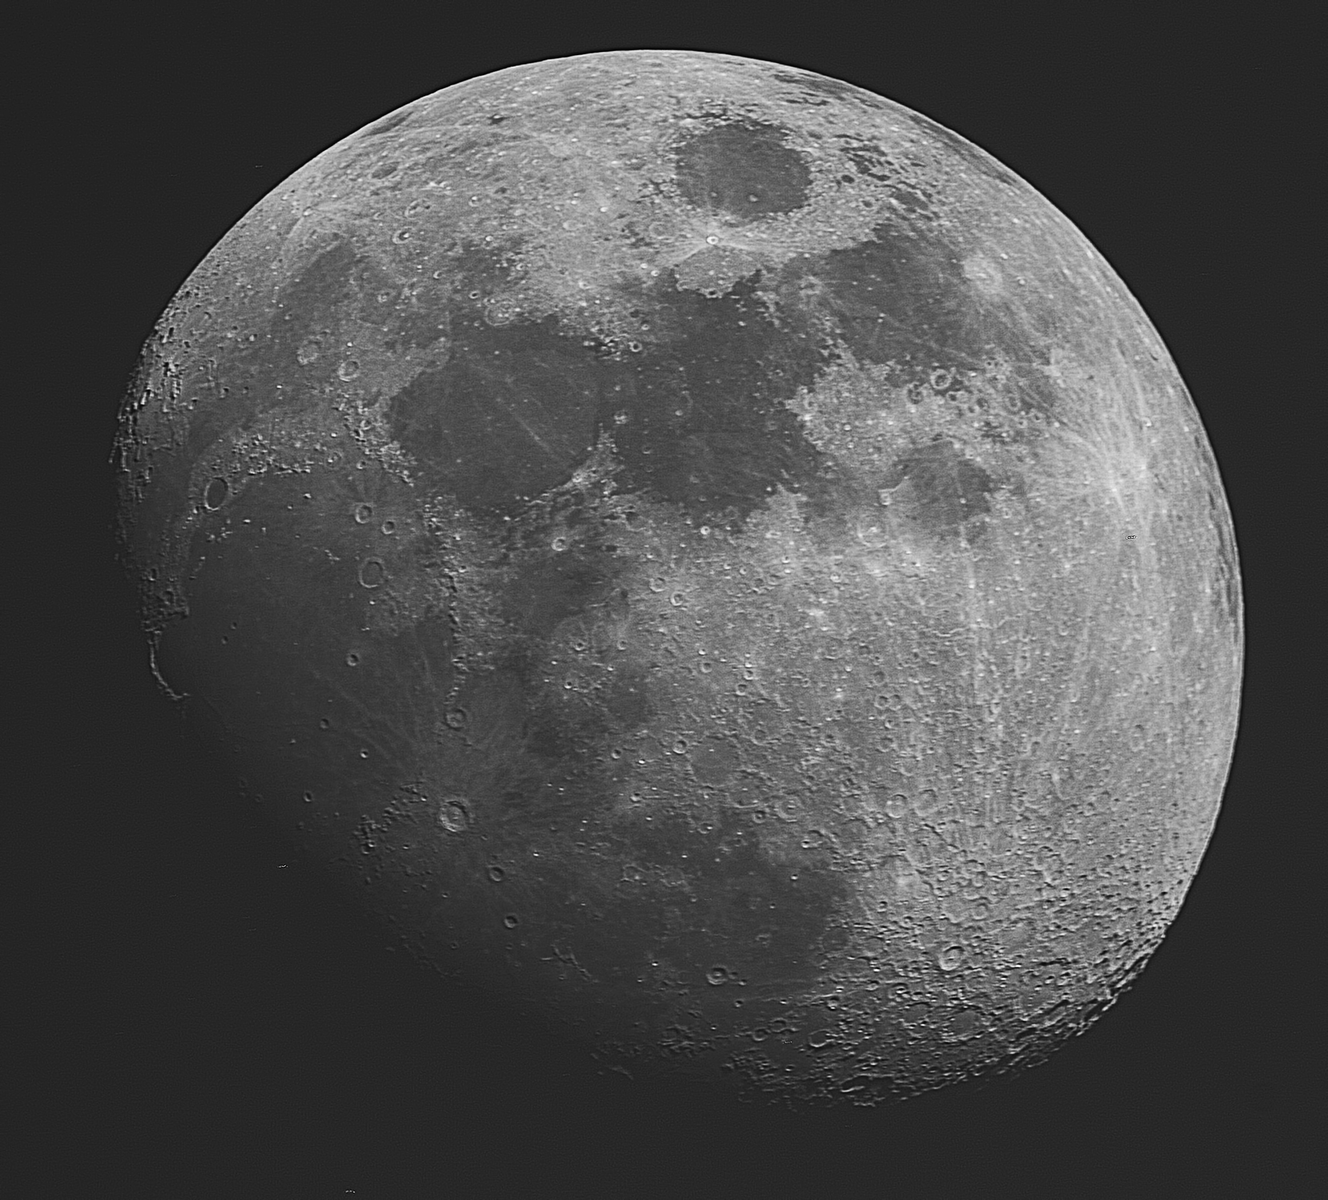 moon17-4-1619.30.35bnw.png